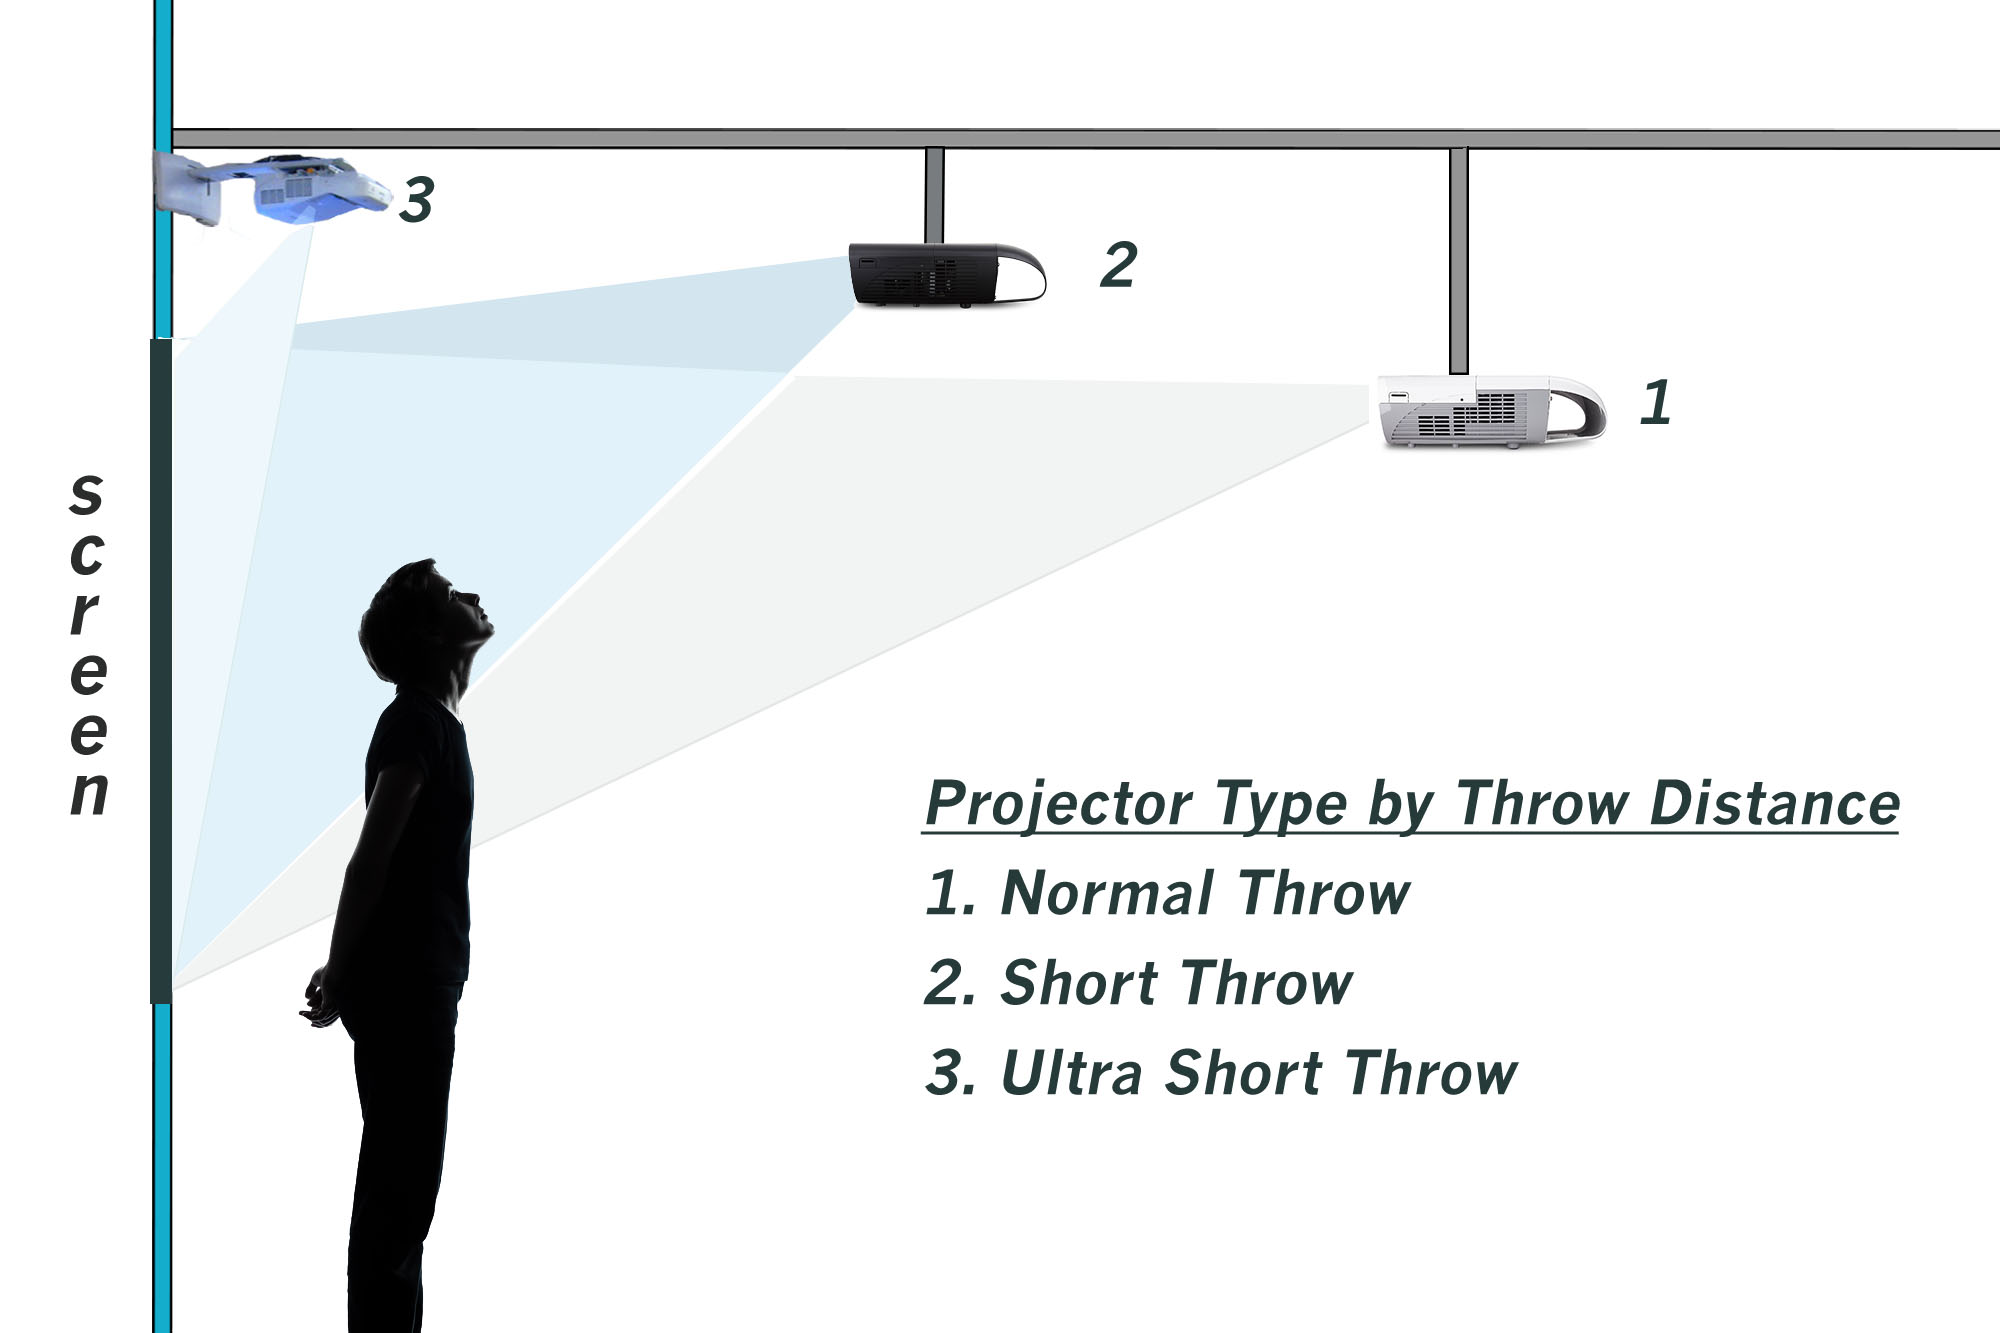 Projector type by Throw distance.jpg